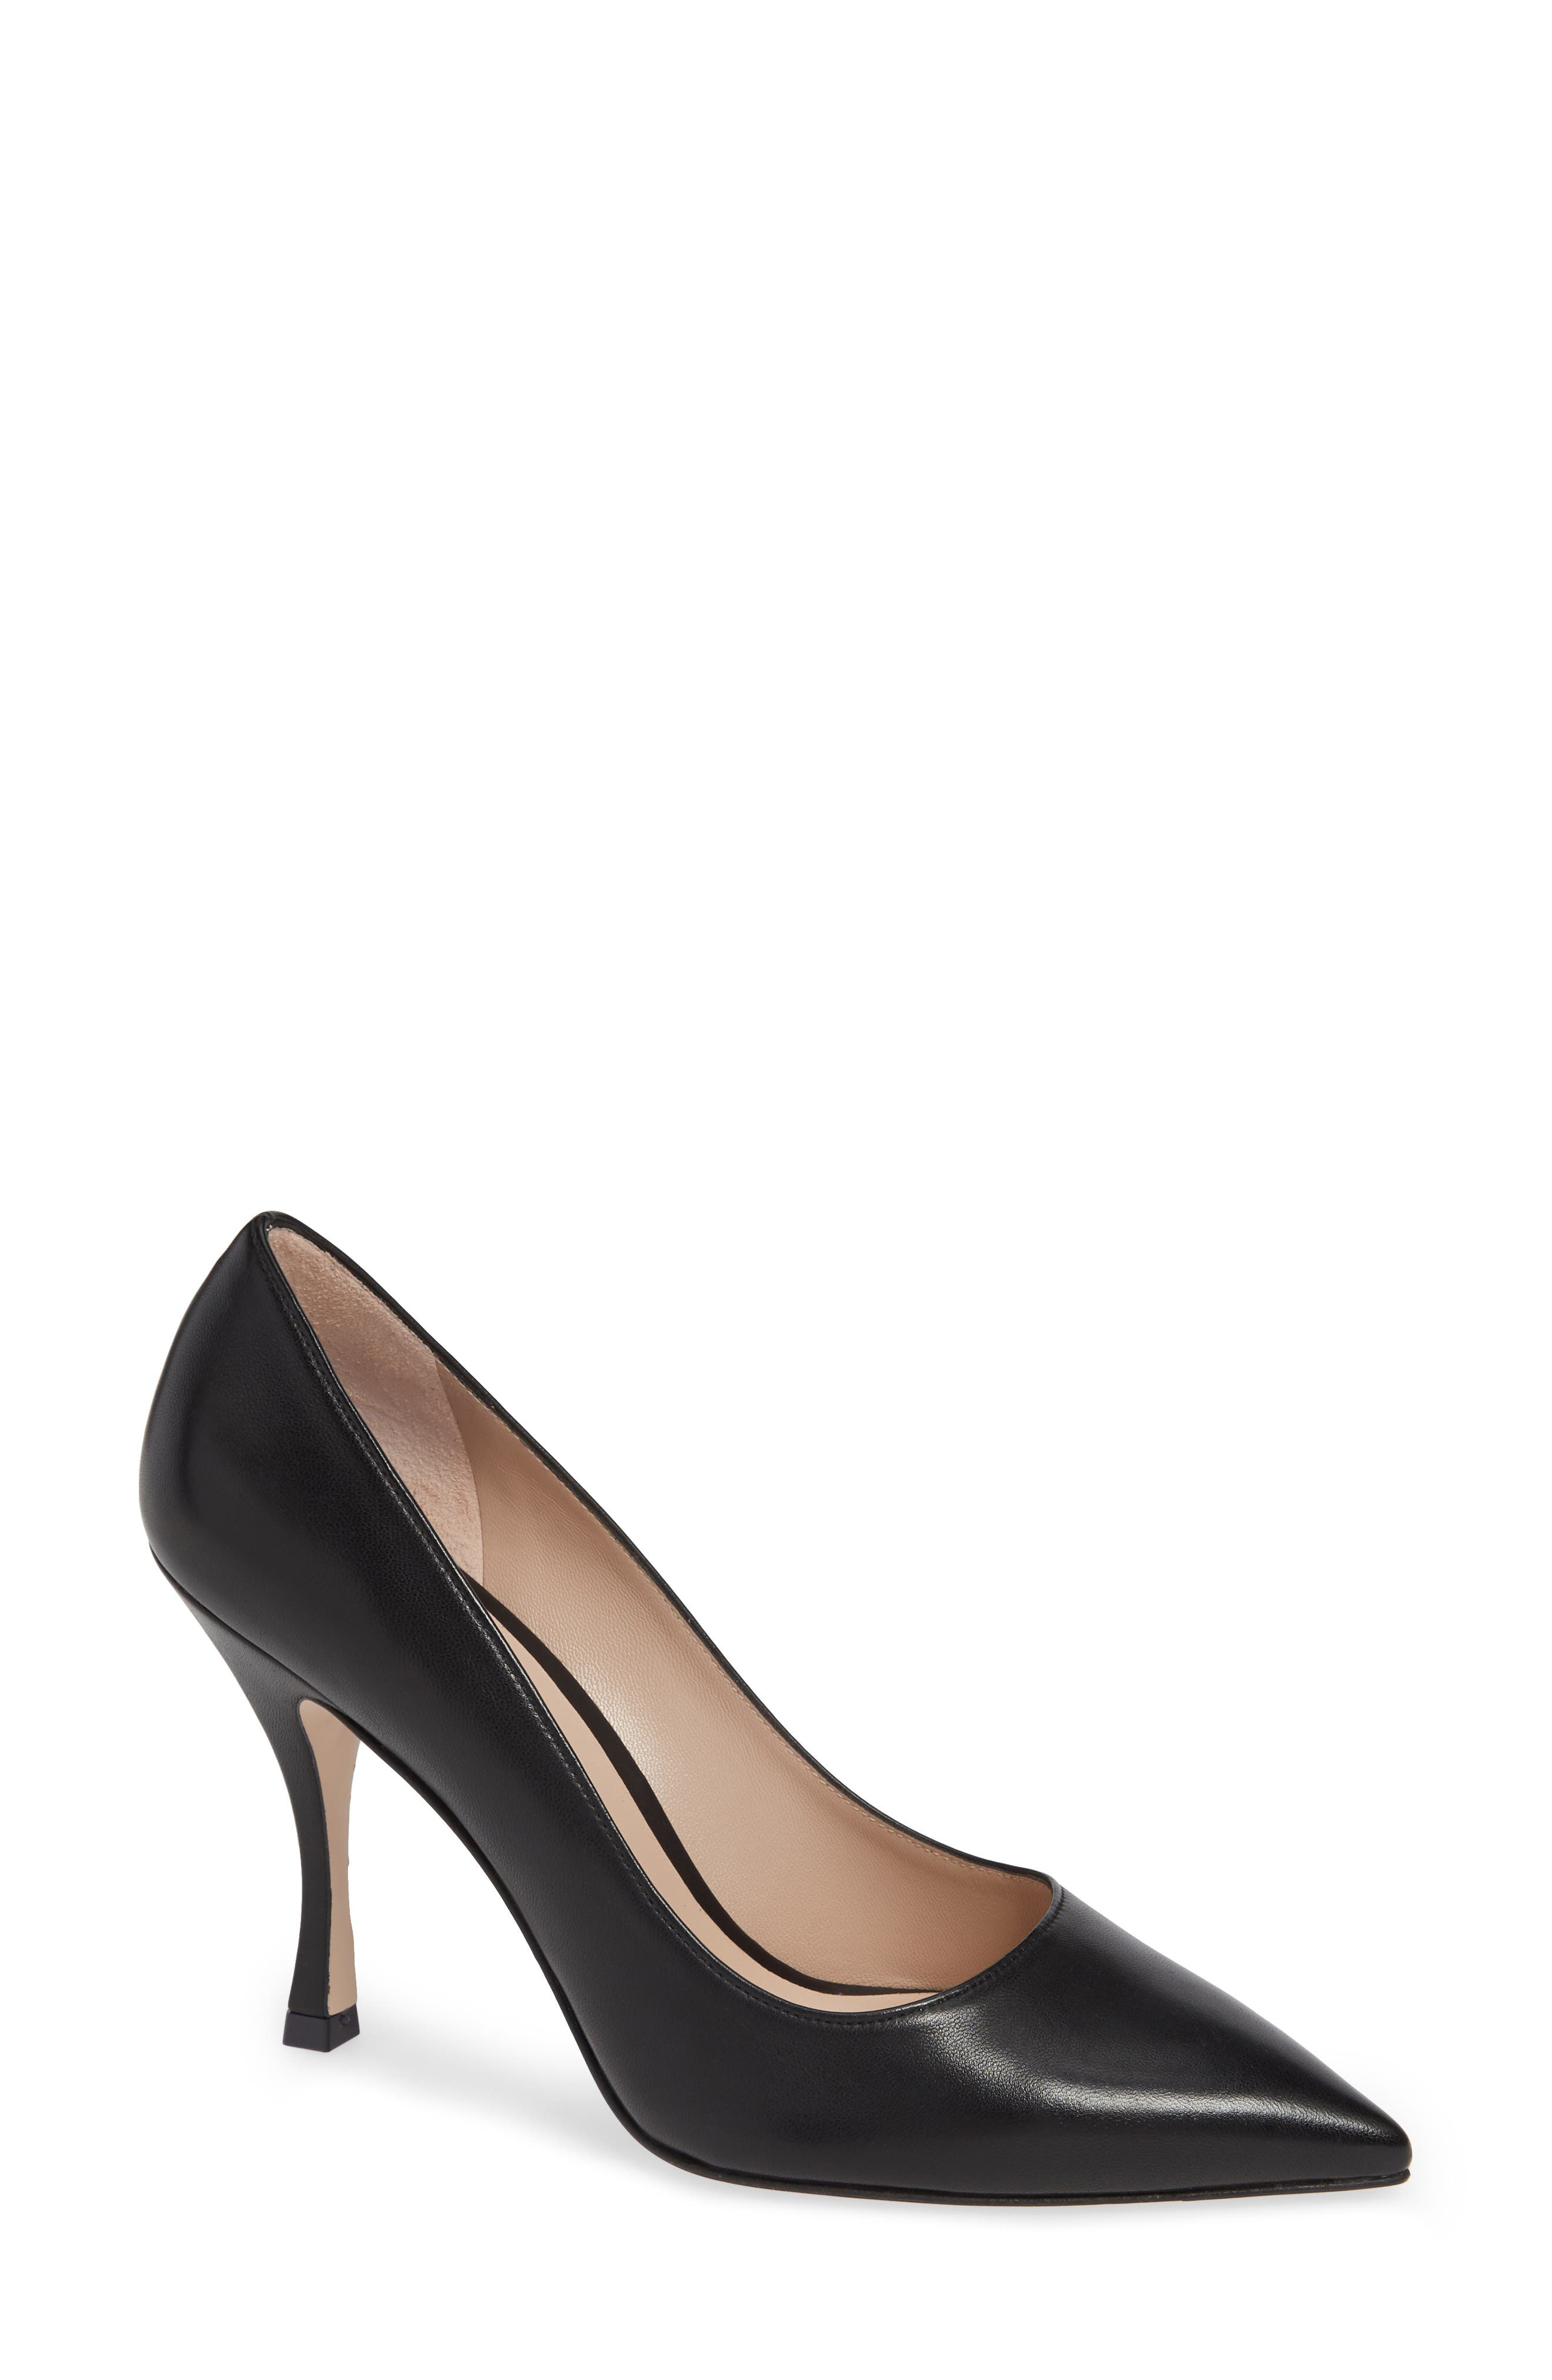 Women'S Tippi 95 Pointed Toe Leather High-Heel Pumps in Black